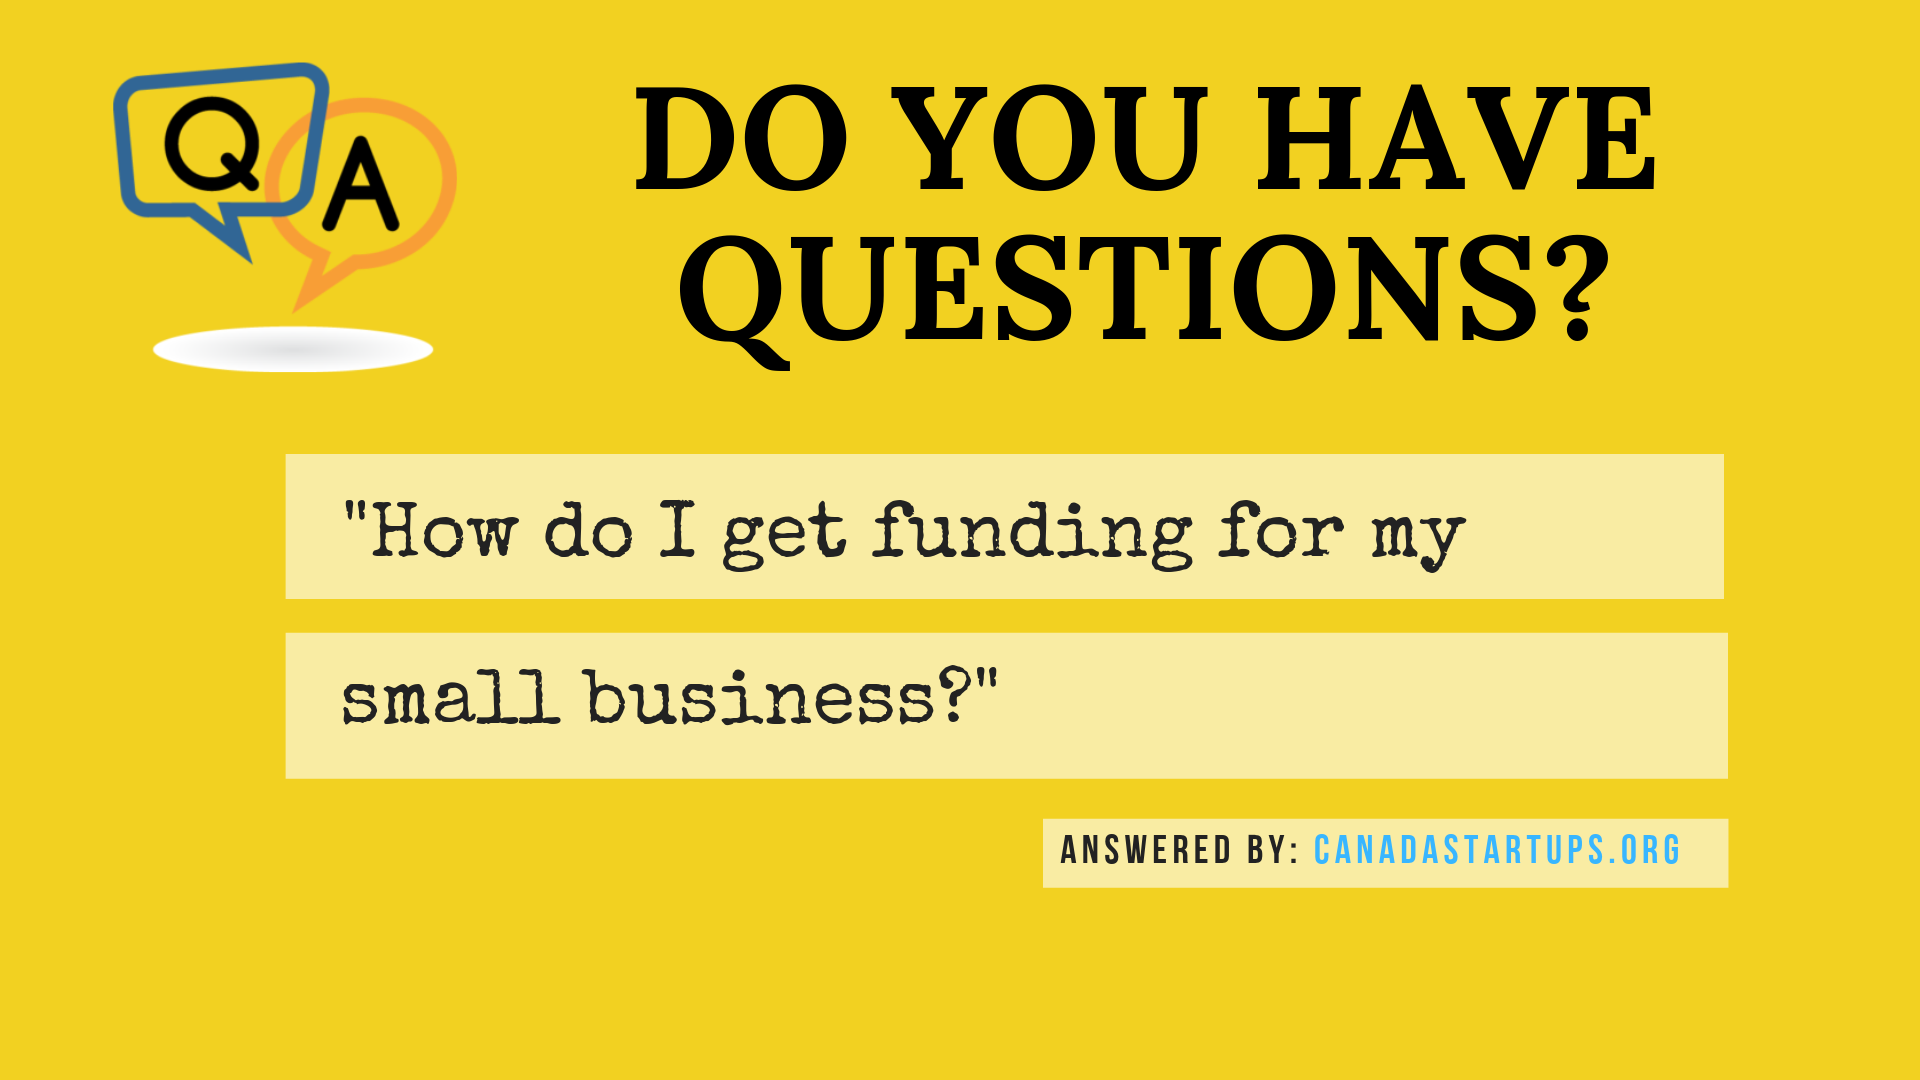 get funding for my small business